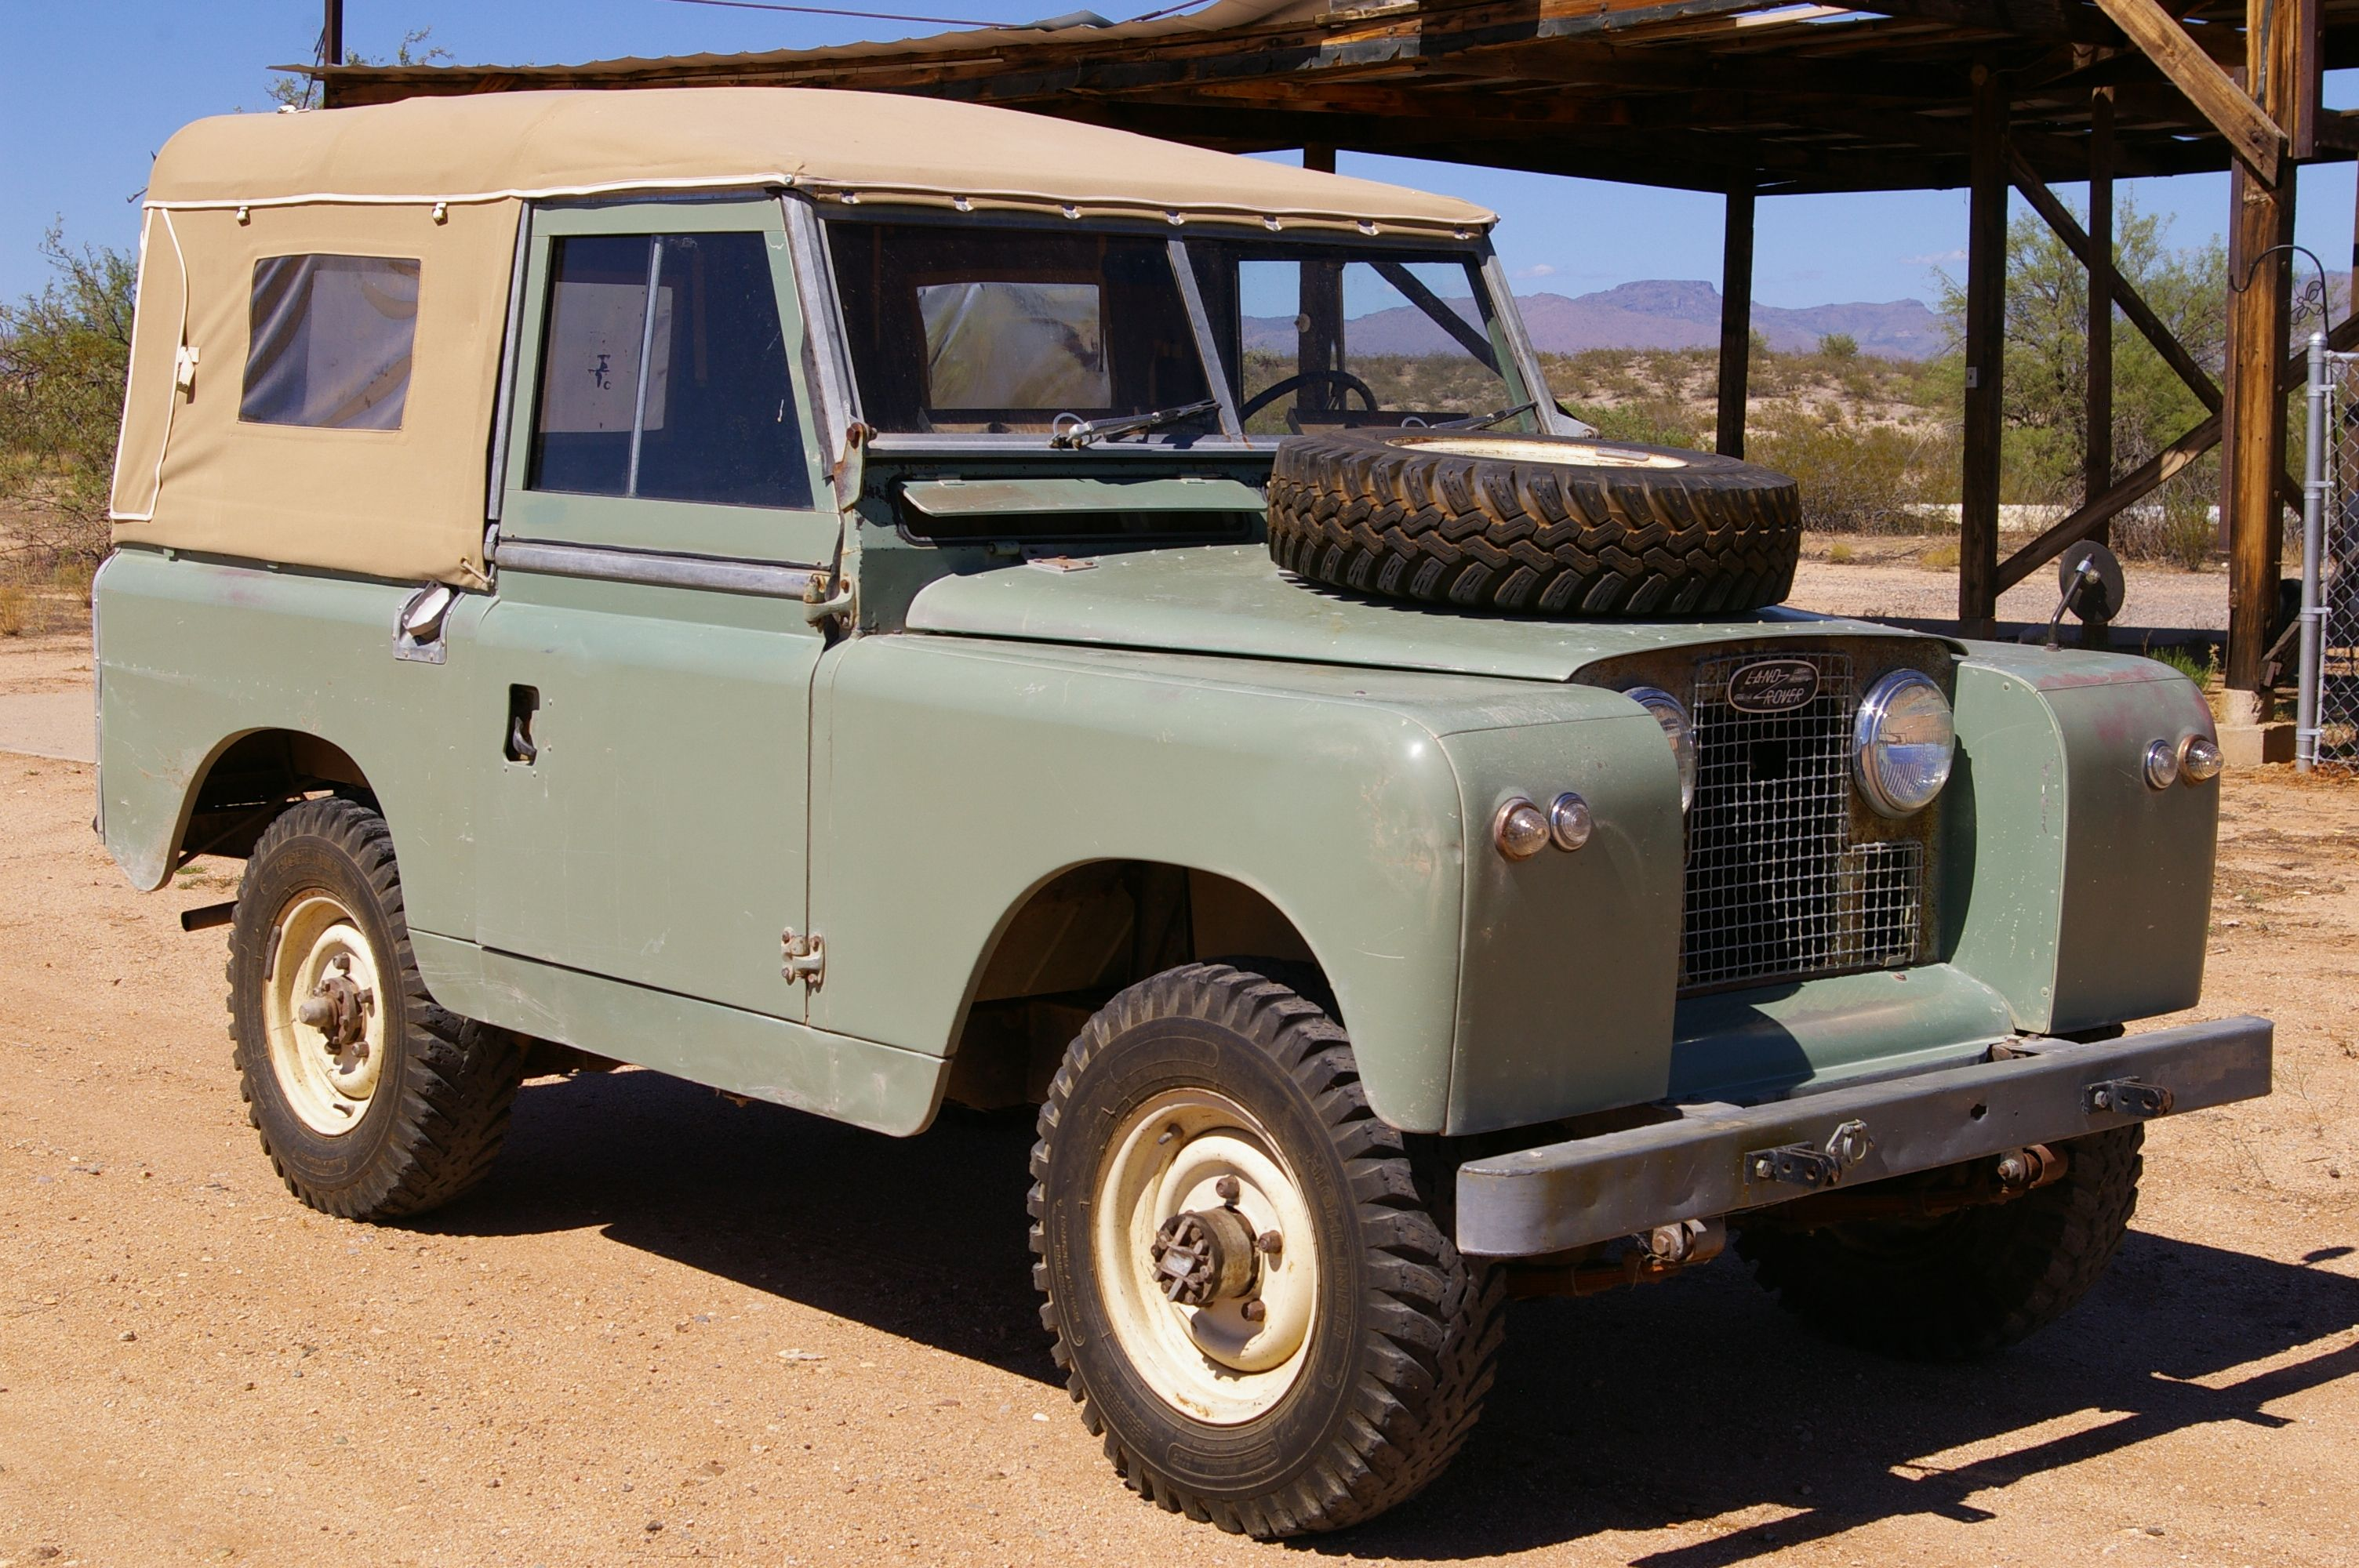 1964 Series IIA Land Rover for sale Update SOLD on EBAY